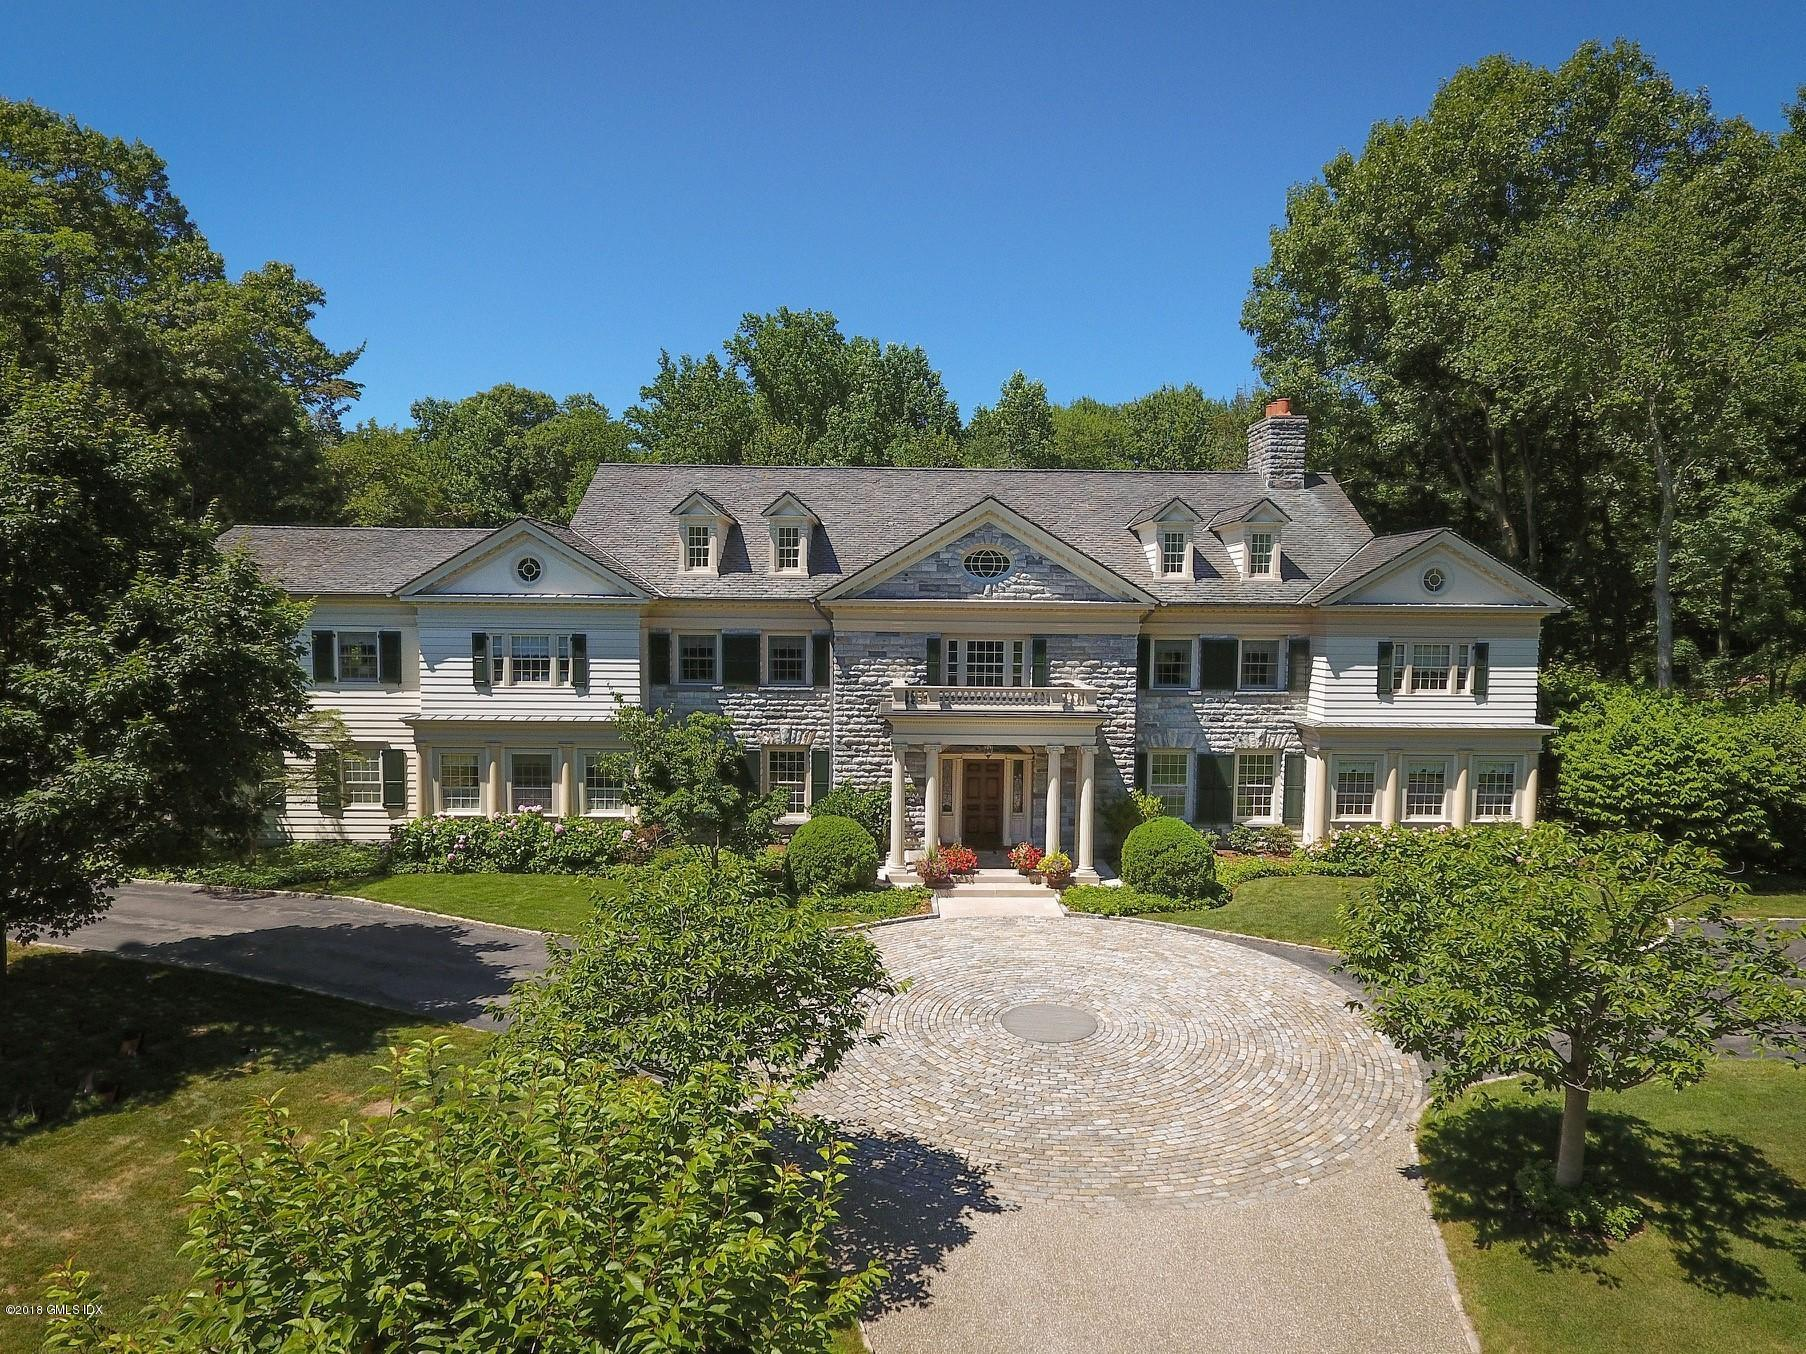 33 Meeting House Road,Greenwich,Connecticut 06831,7 Bedrooms Bedrooms,8 BathroomsBathrooms,Single family,Meeting House,79401